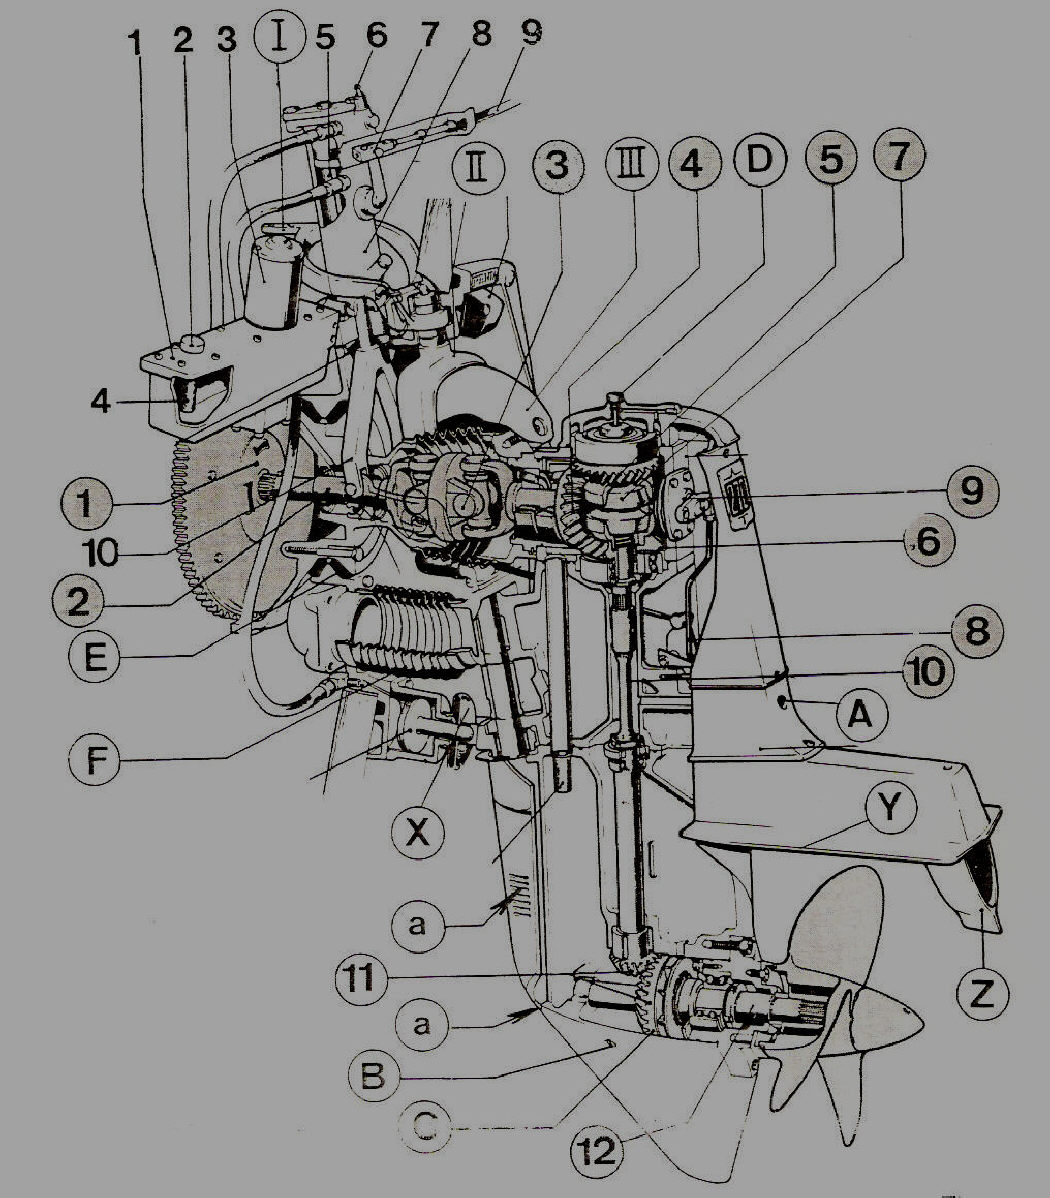 Inboard Outboard Boat Engine Diagram. Engine. Auto Parts